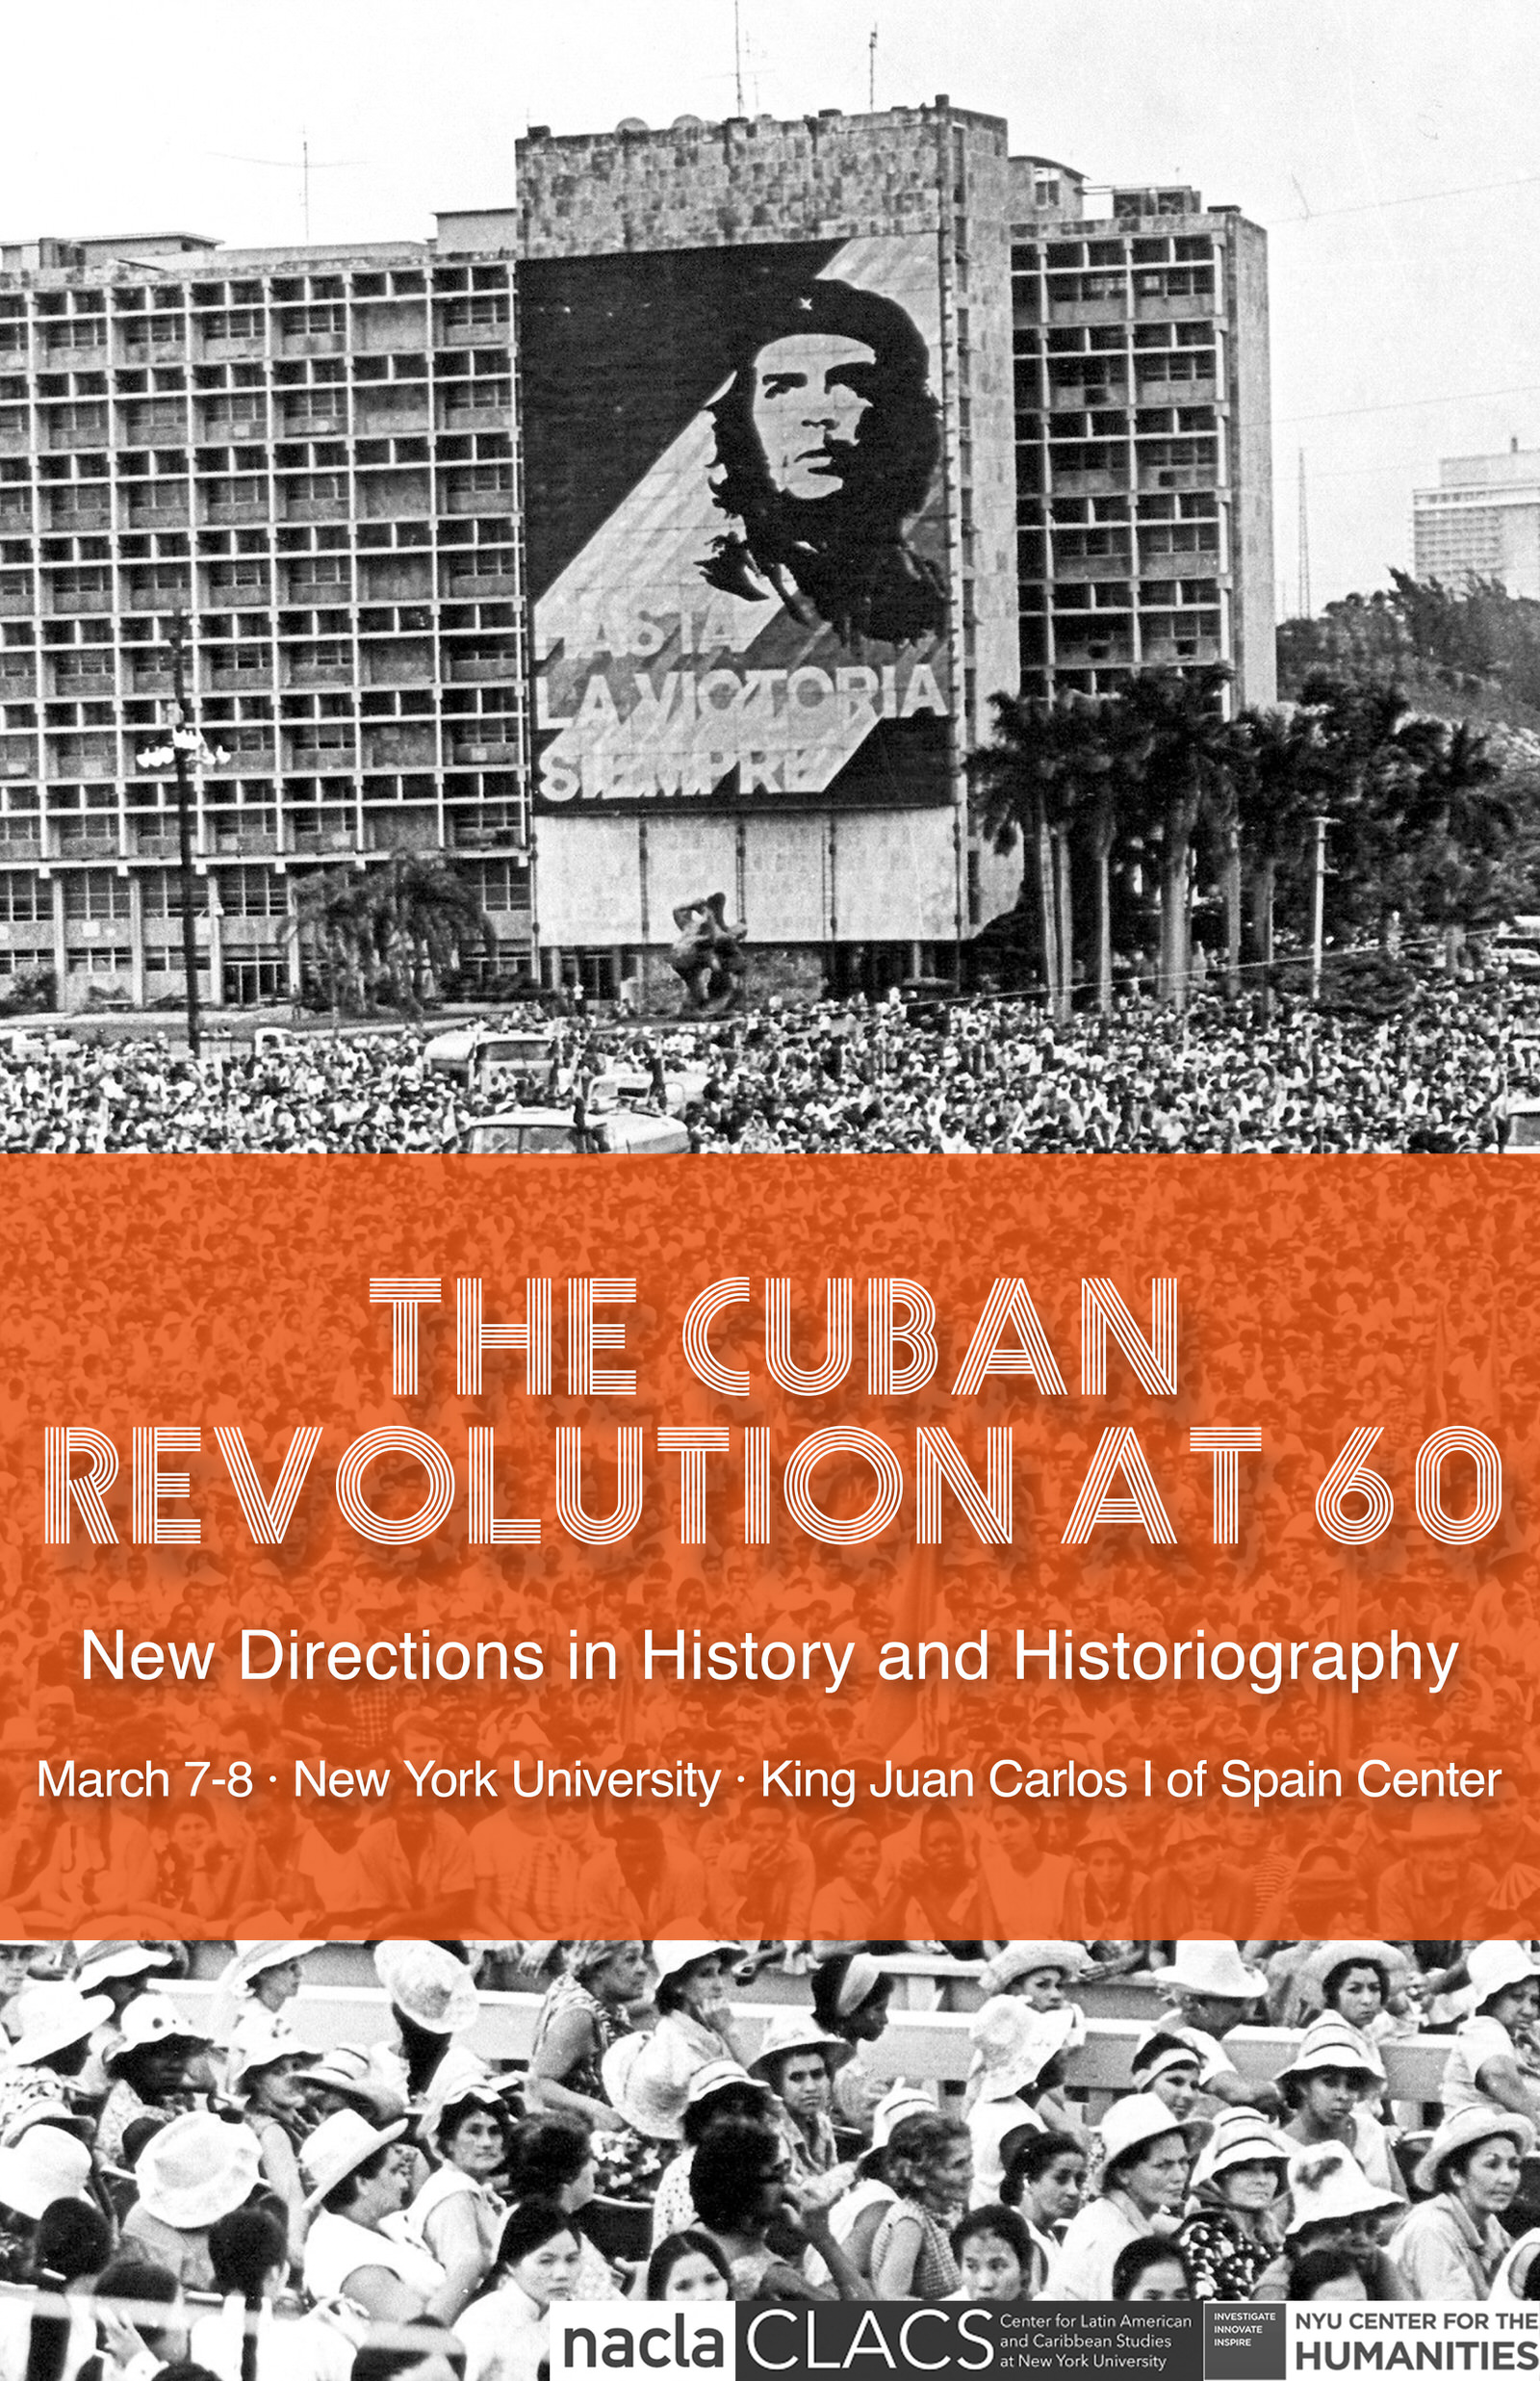 The Cuban Revolution at 60: New Directions in History and Historiography